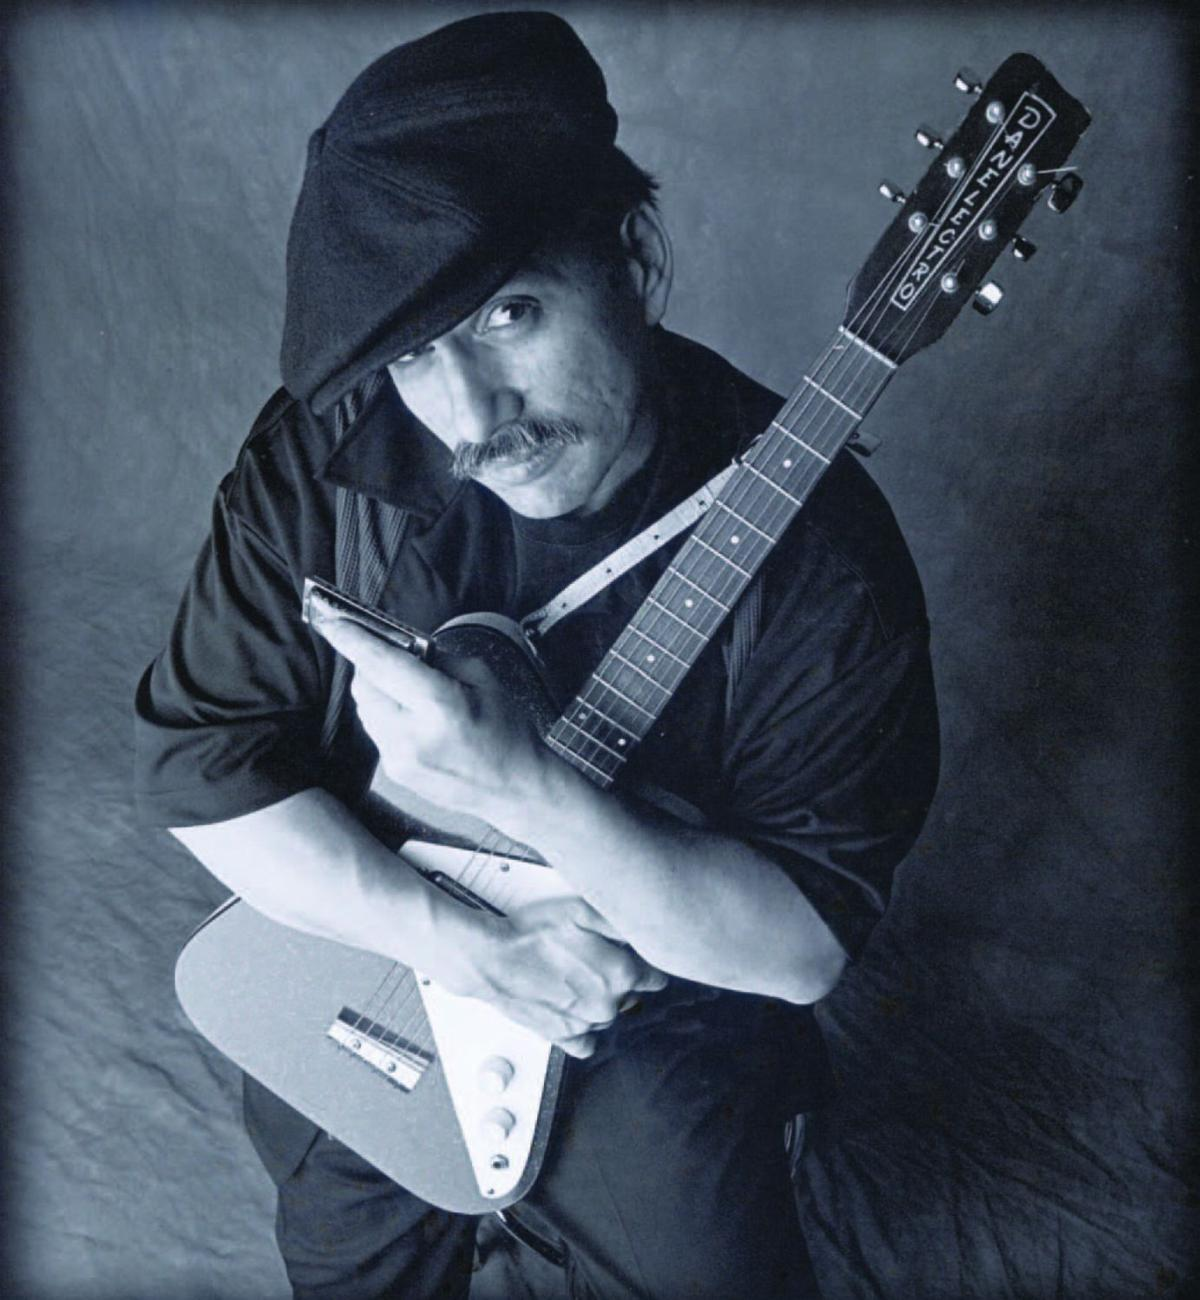 Friday, August 18 — Enjoy some touring blues music goodness